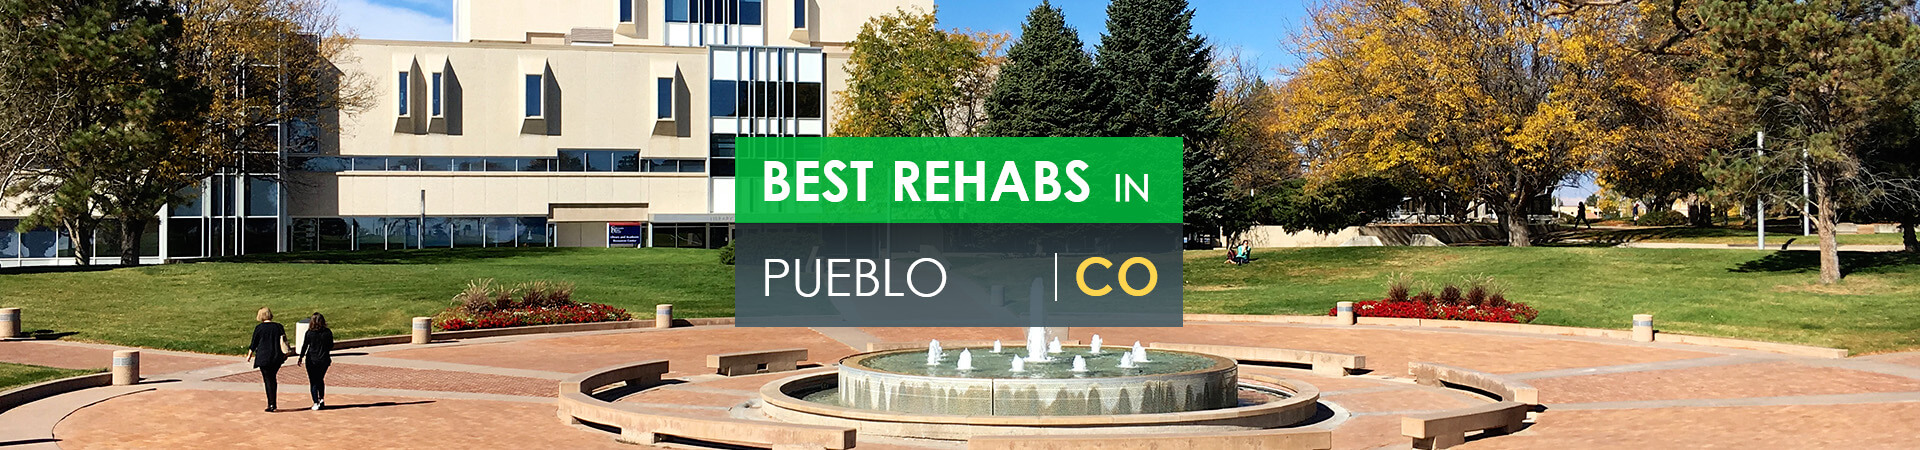 Best rehabs in Pueblo, CO